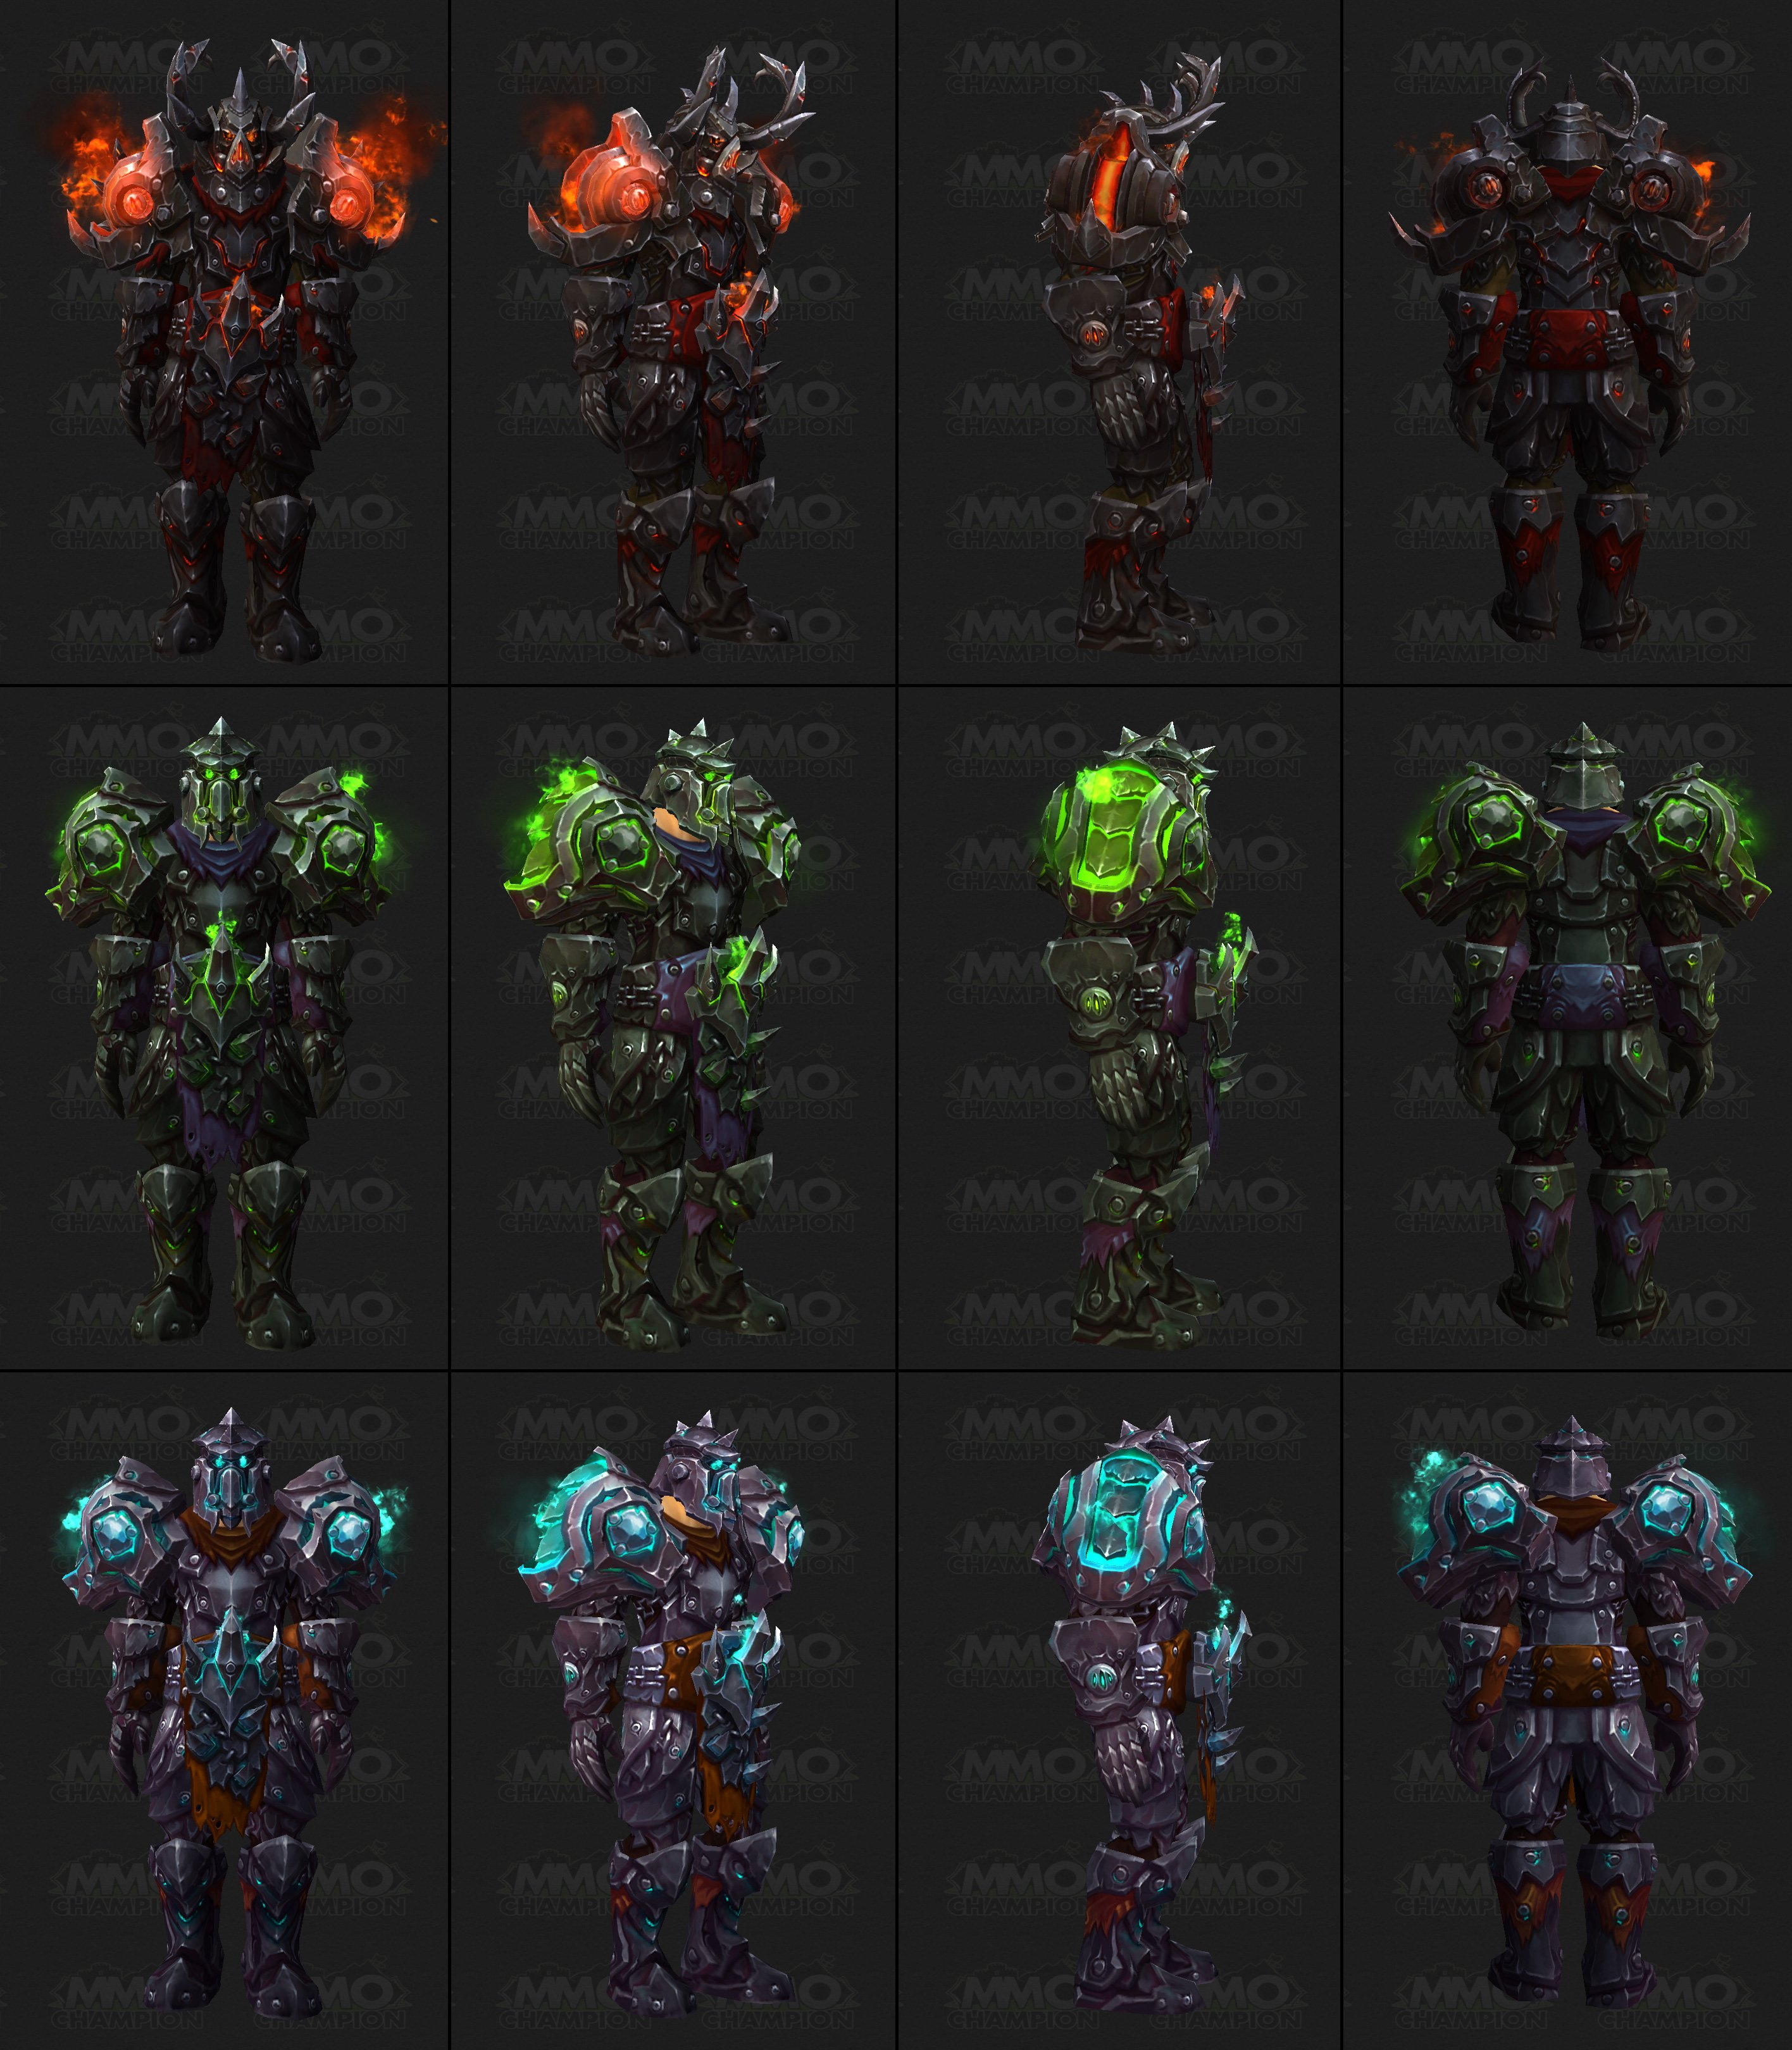 Tier 17 Warrior Armor Sets Comic Con Blue Posts Blue Tweets Azeroth Choppers  sc 1 st  MMO-Ch&ion & Tier 17 Warrior Armor Sets Comic Con Blue Posts Blue Tweets ...